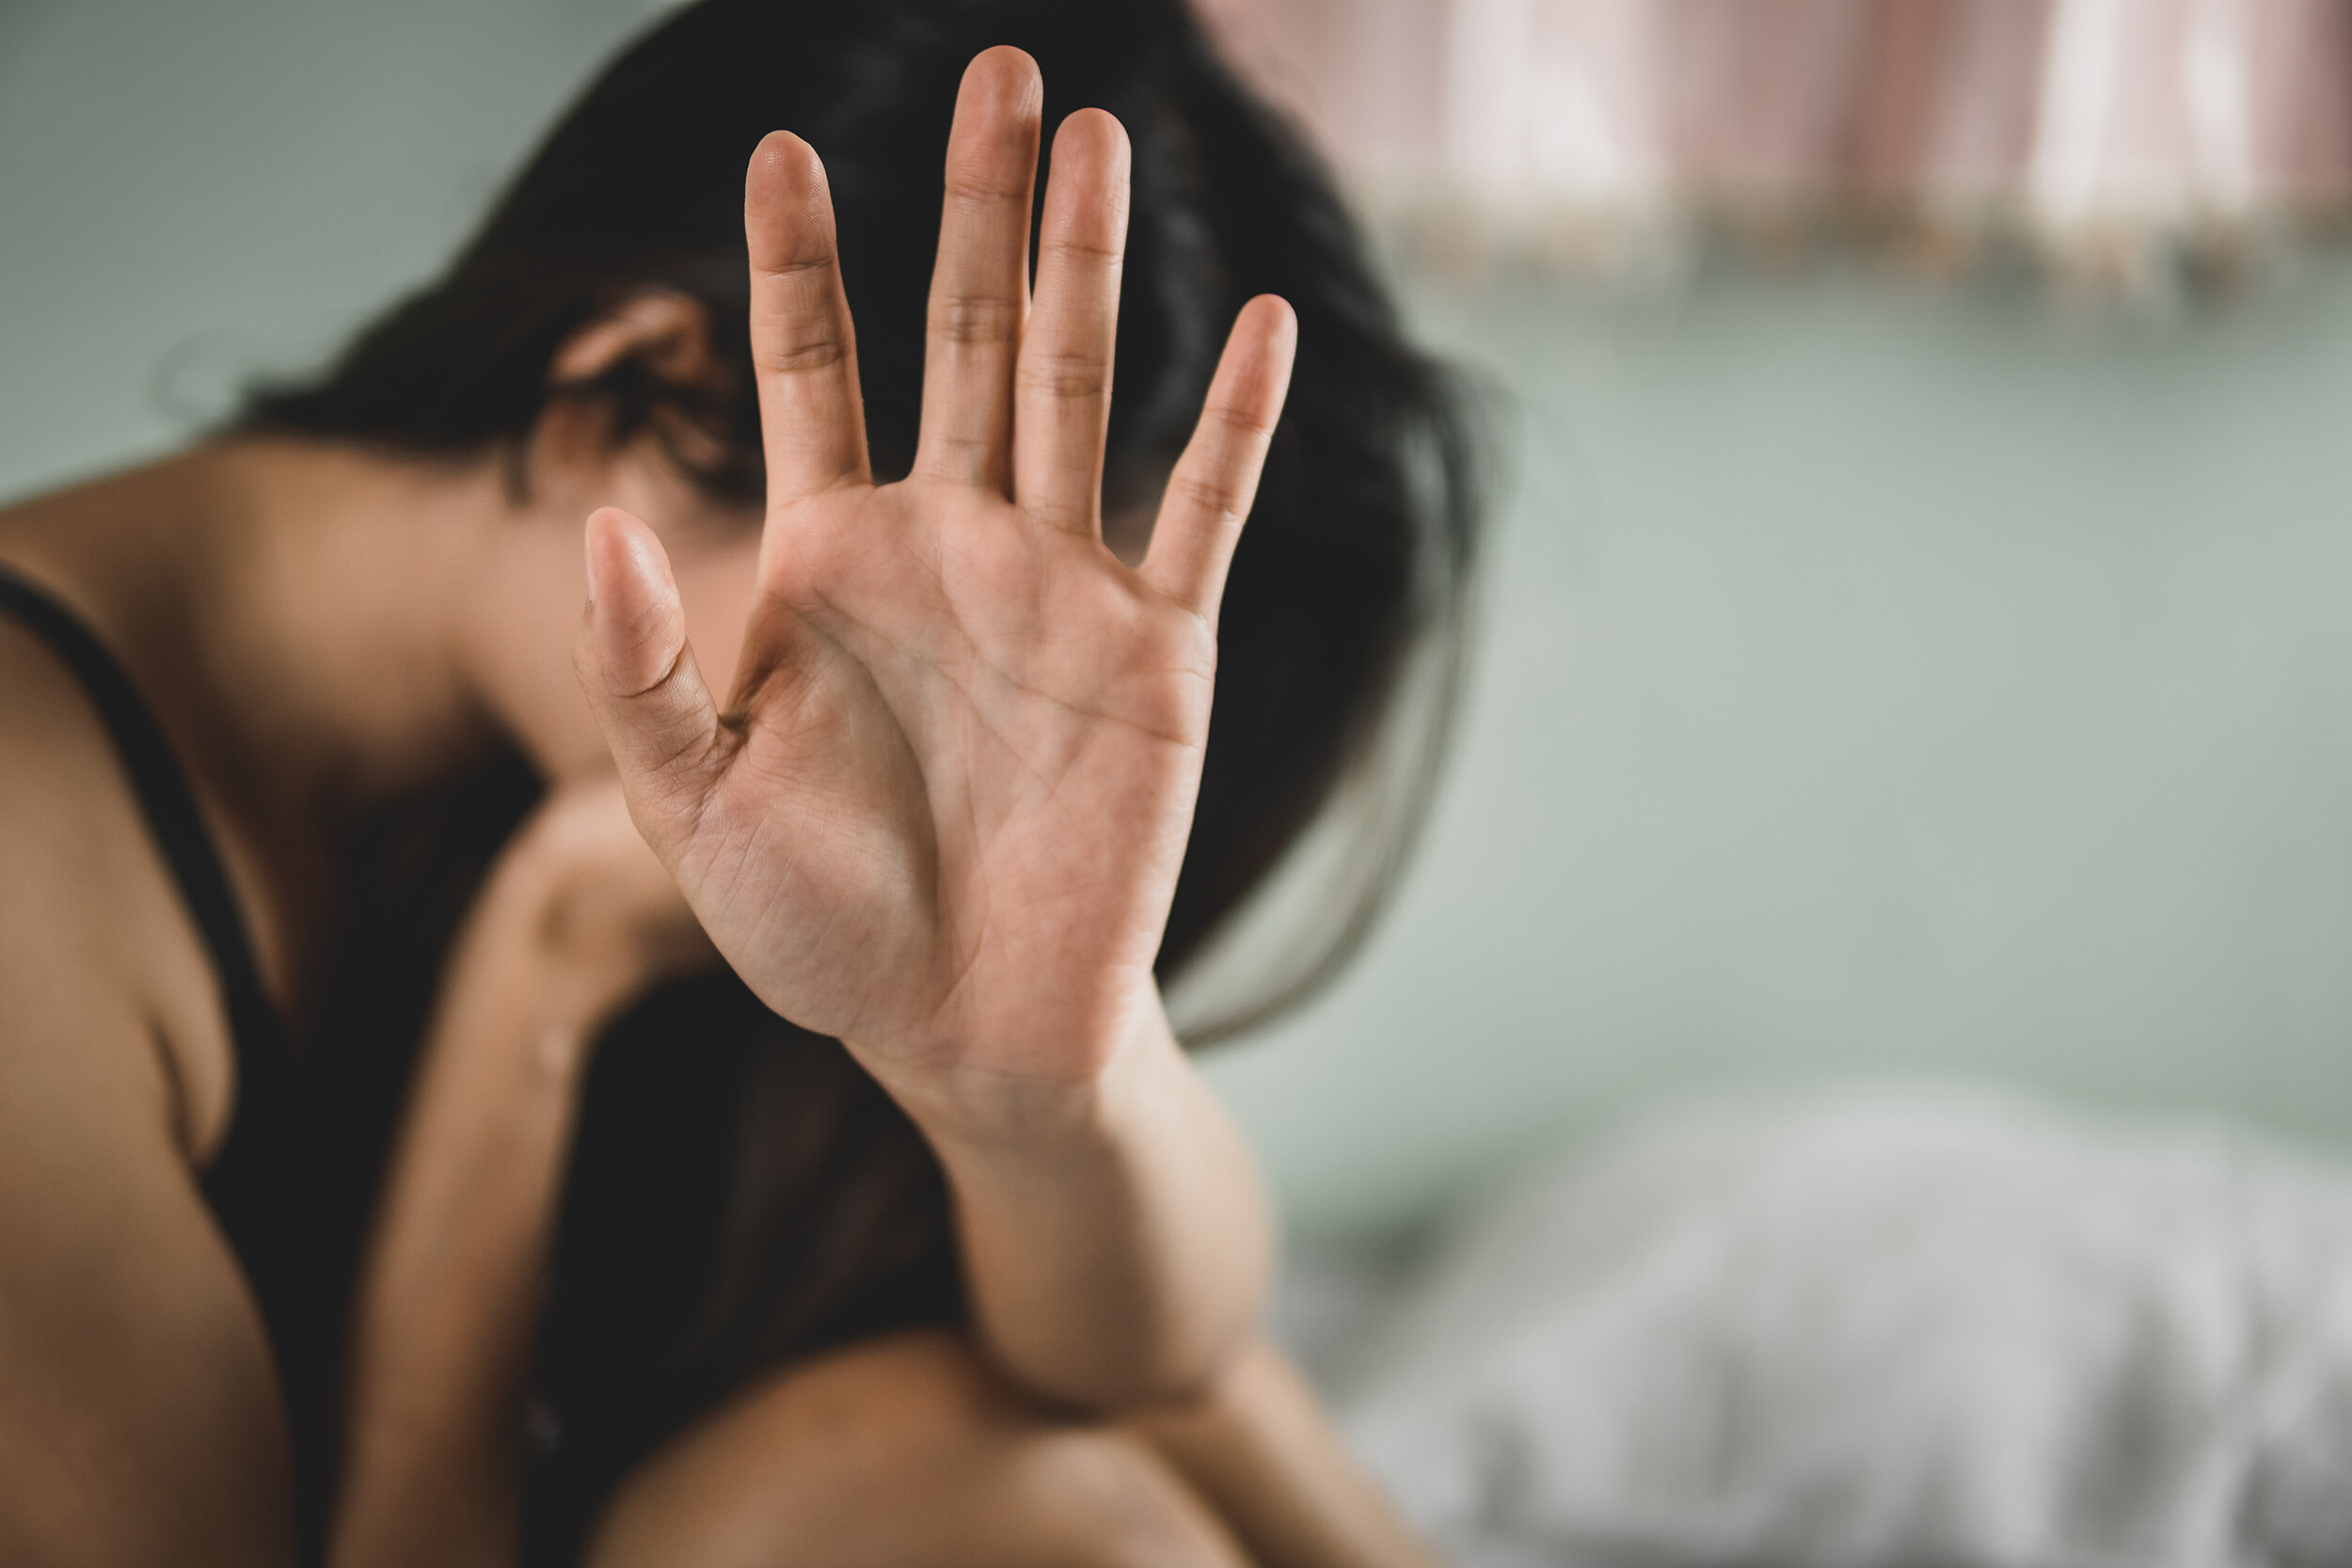 Sexual assault linked to later brain damage in women, study finds